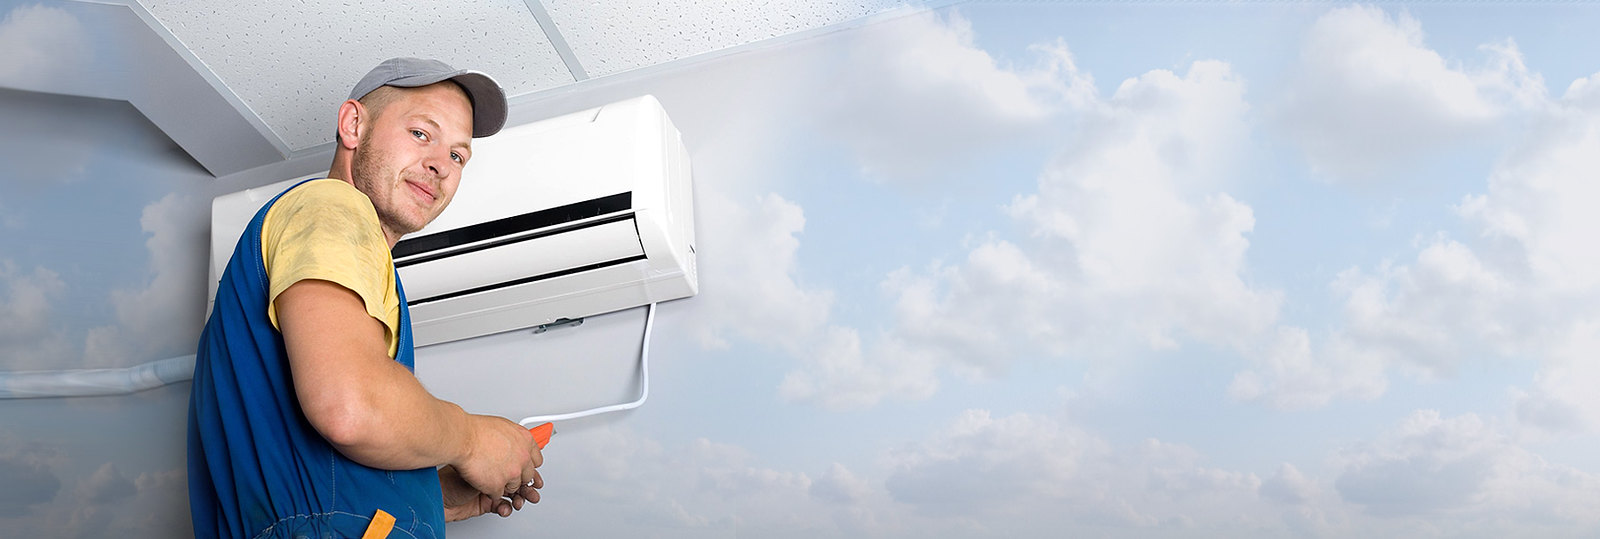 Commercial Air Conditioning Repair- TRUE AIR AIRCONDITIONING SERVICES